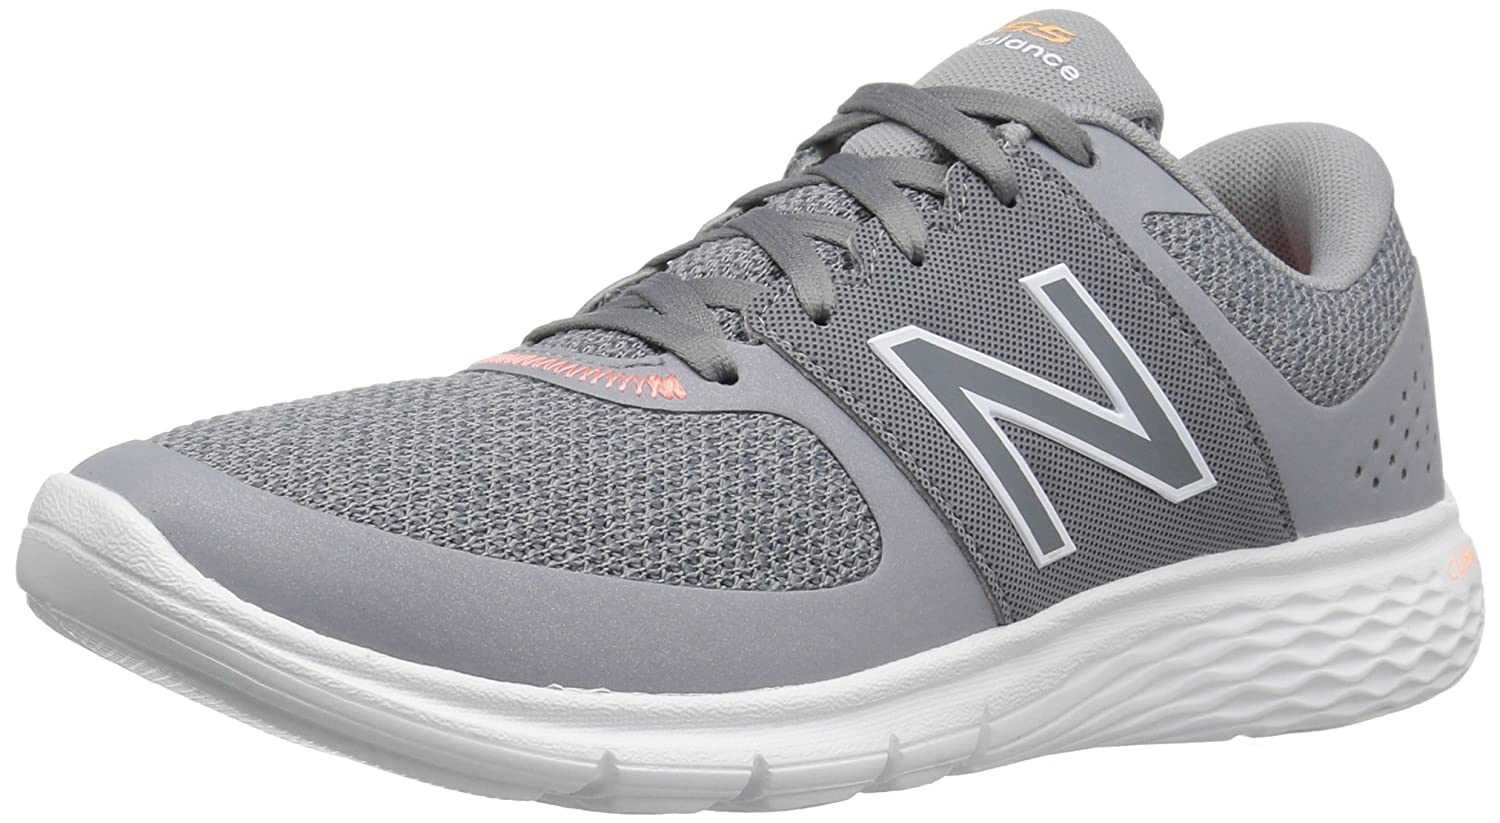 New Balance Women's WA365v1 CUSH + Walking Shoe B01FSIM4E8 9 D US|Grey/White